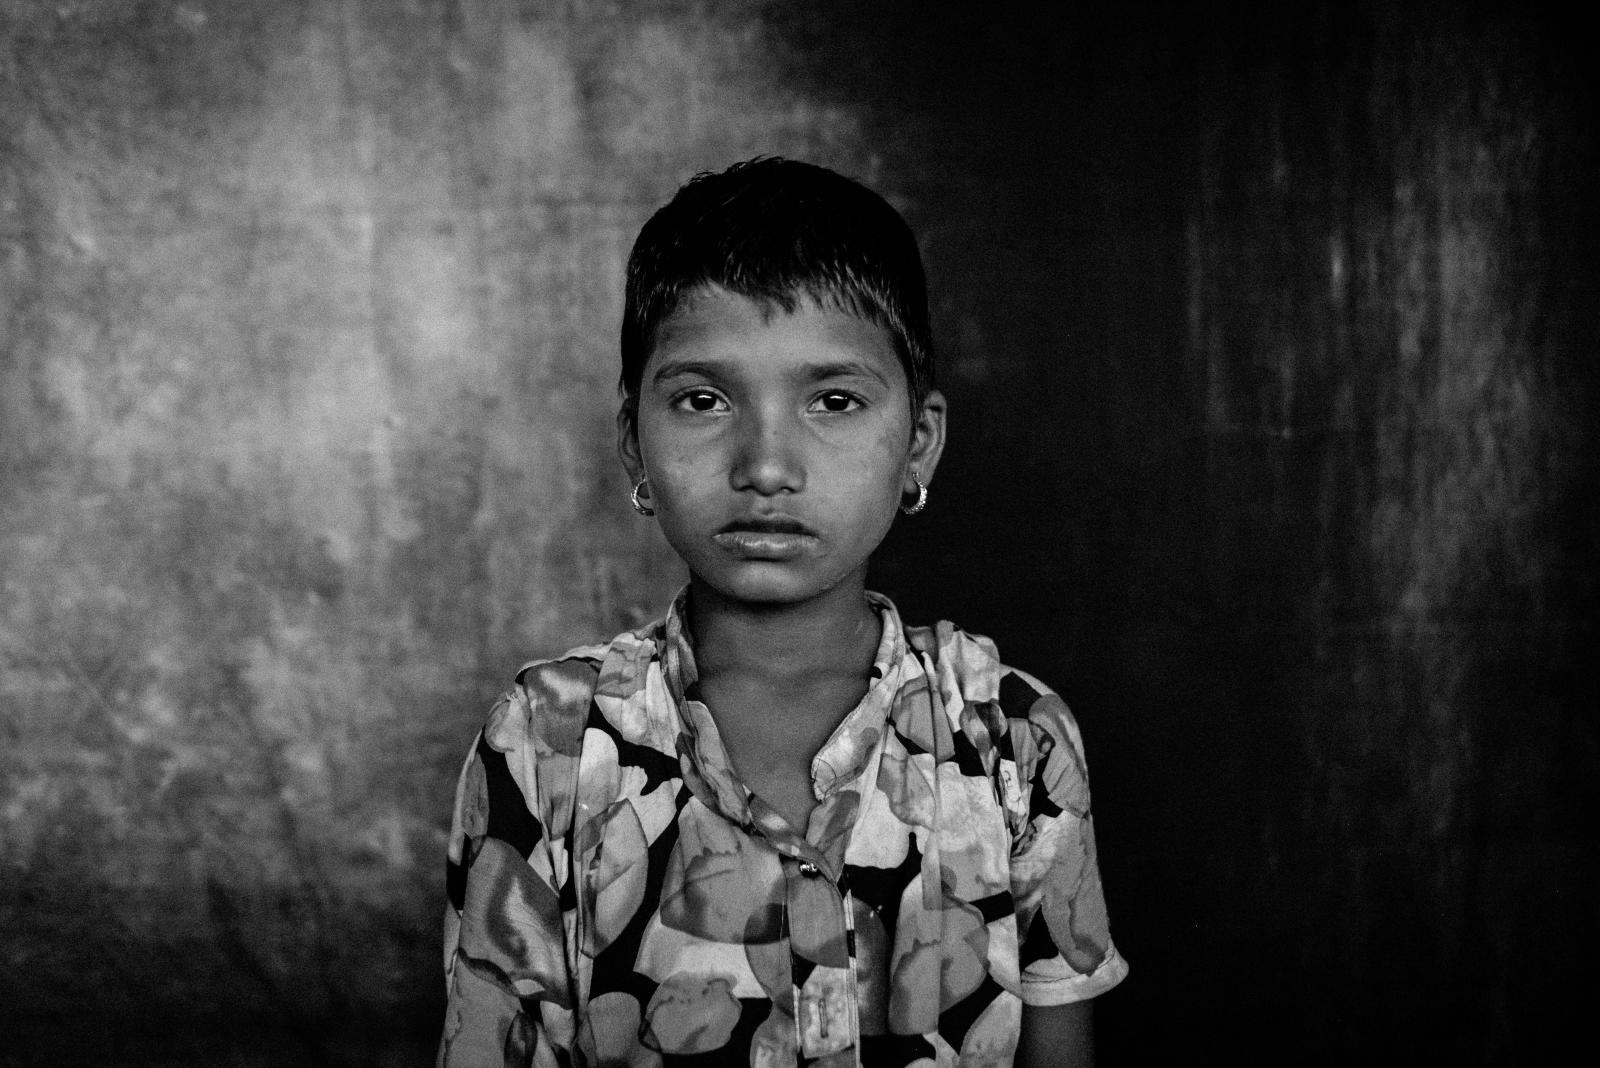 Nur Kalima, 10, from Tula Toli village.  Her mother was mother was one of the many victims of sexual violence by the Myanmar military and her father was shot and killed.  Nur was beaten with a stick by a soldier till she went unconscious and thinks she was sliced with a knife.  After she awoke, there was a large gash on the top of her head.